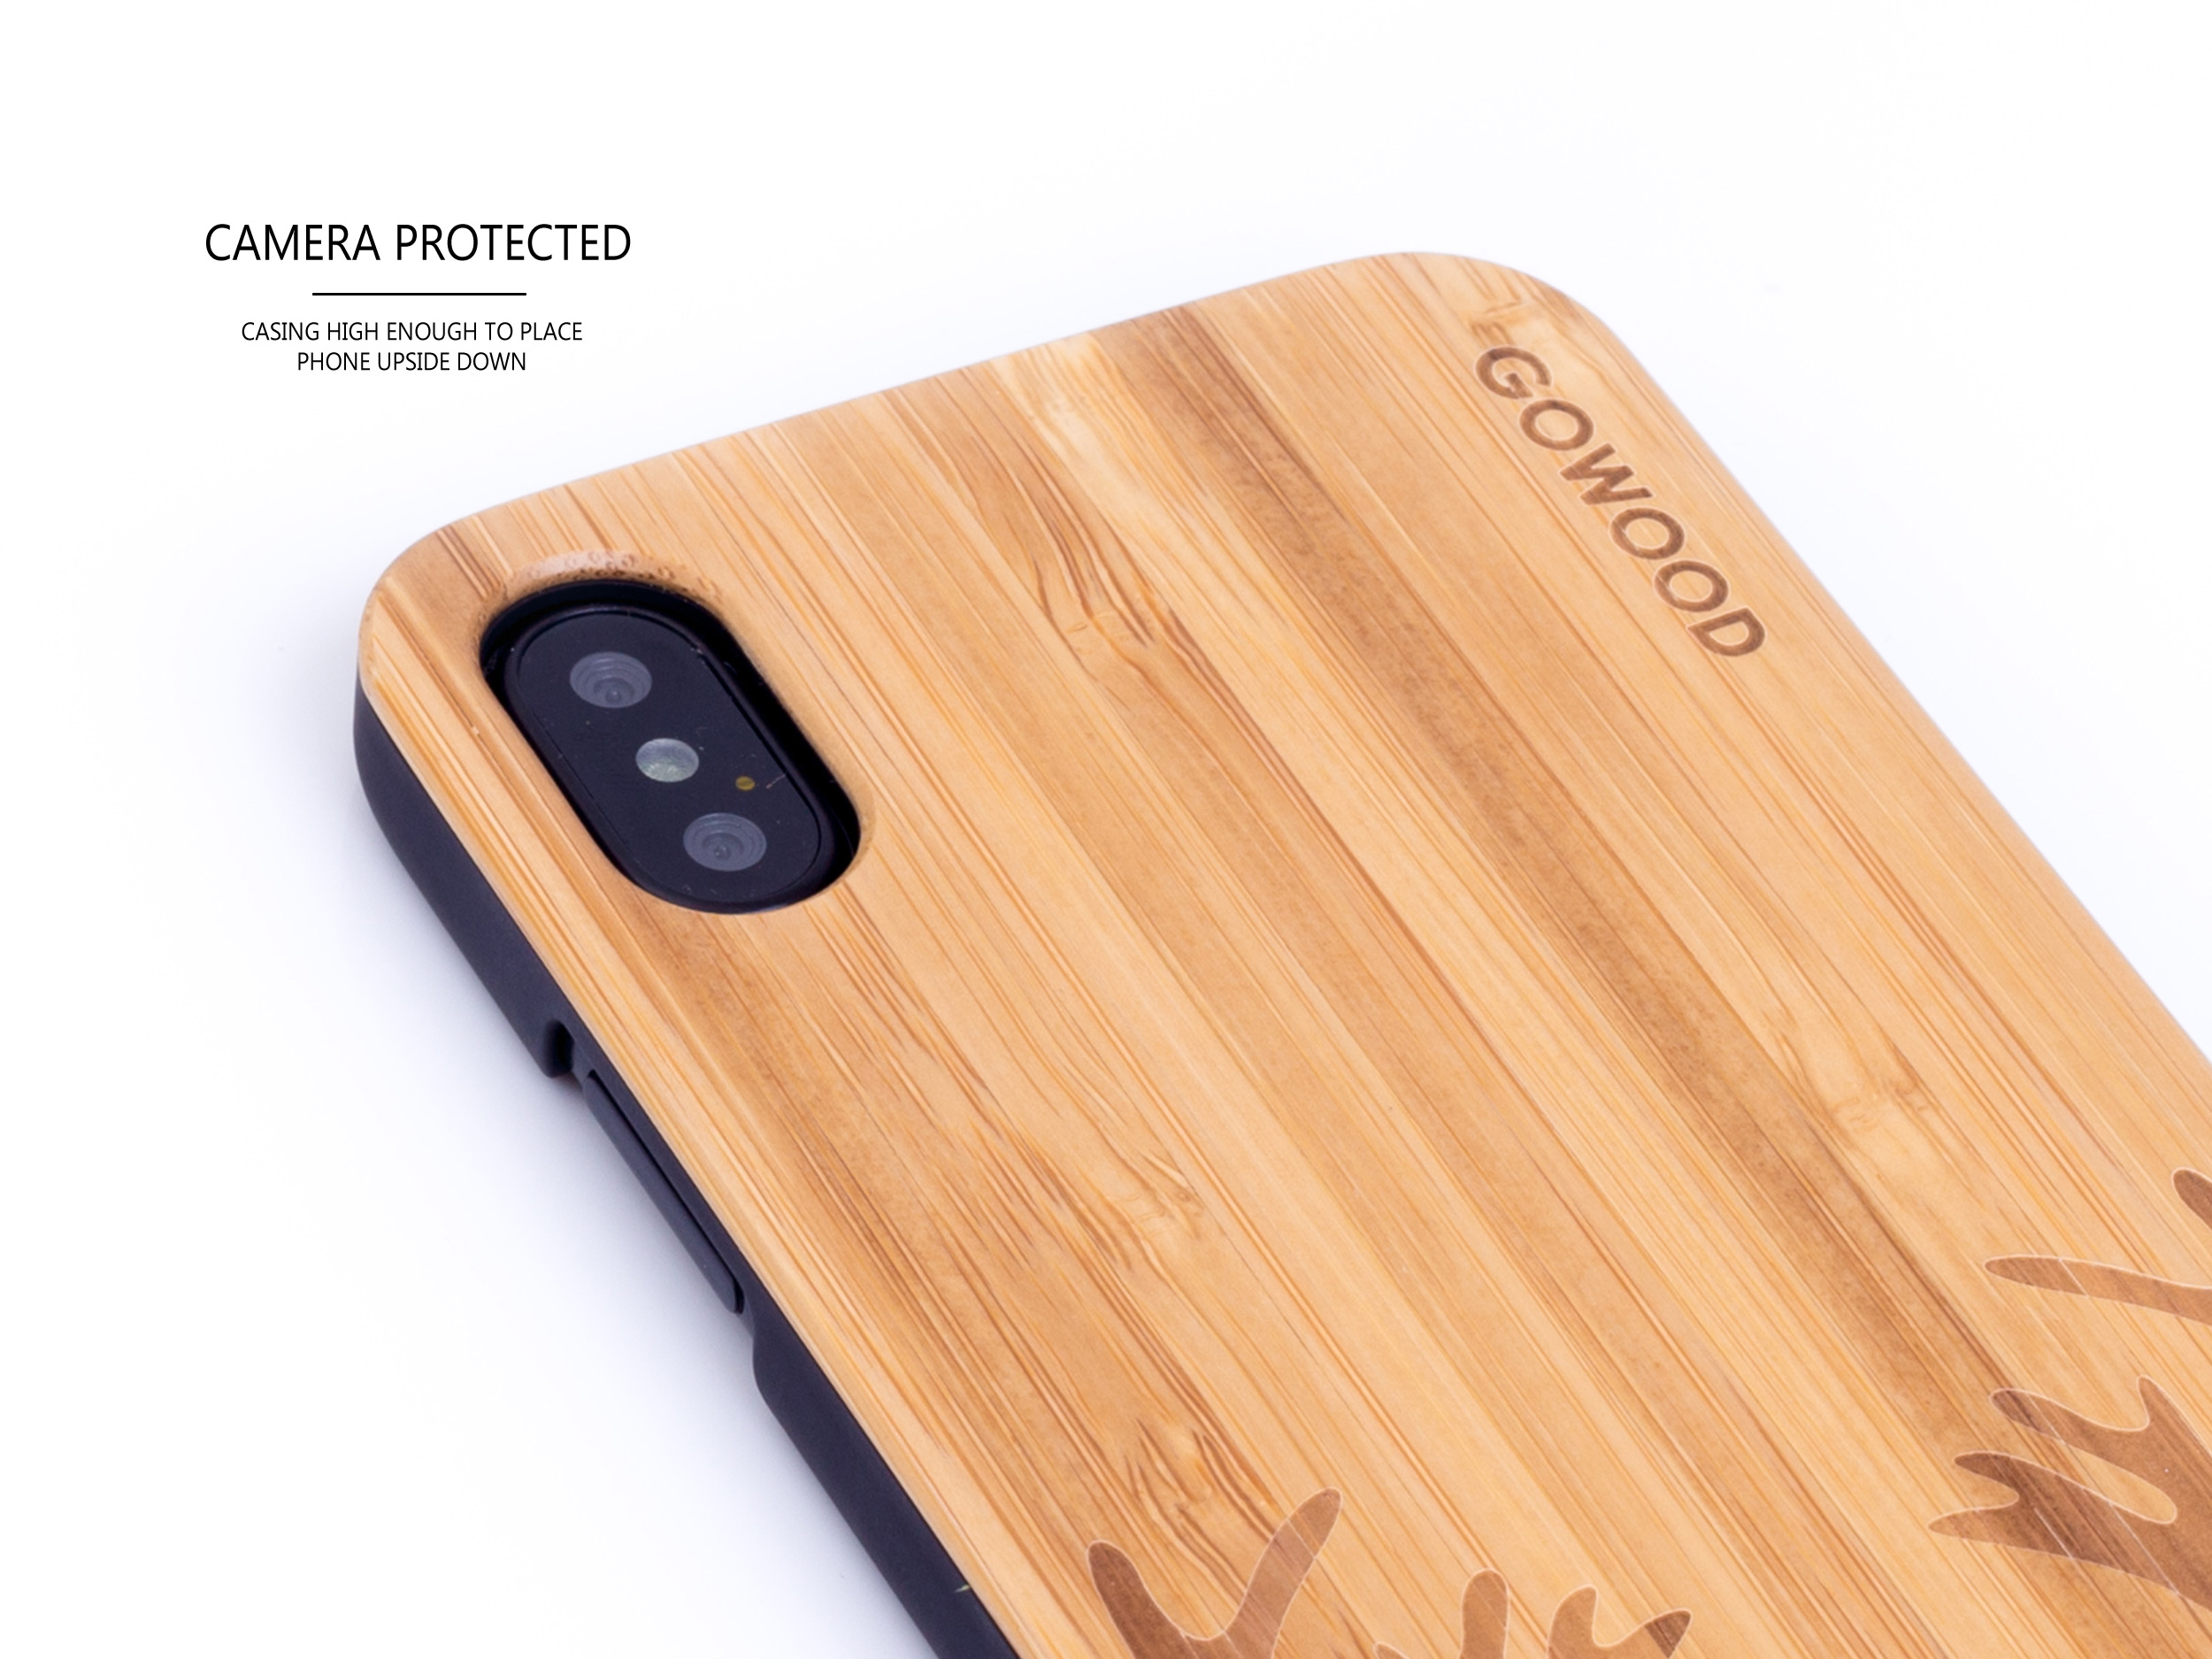 iPhone X wood case bamboo deer camera